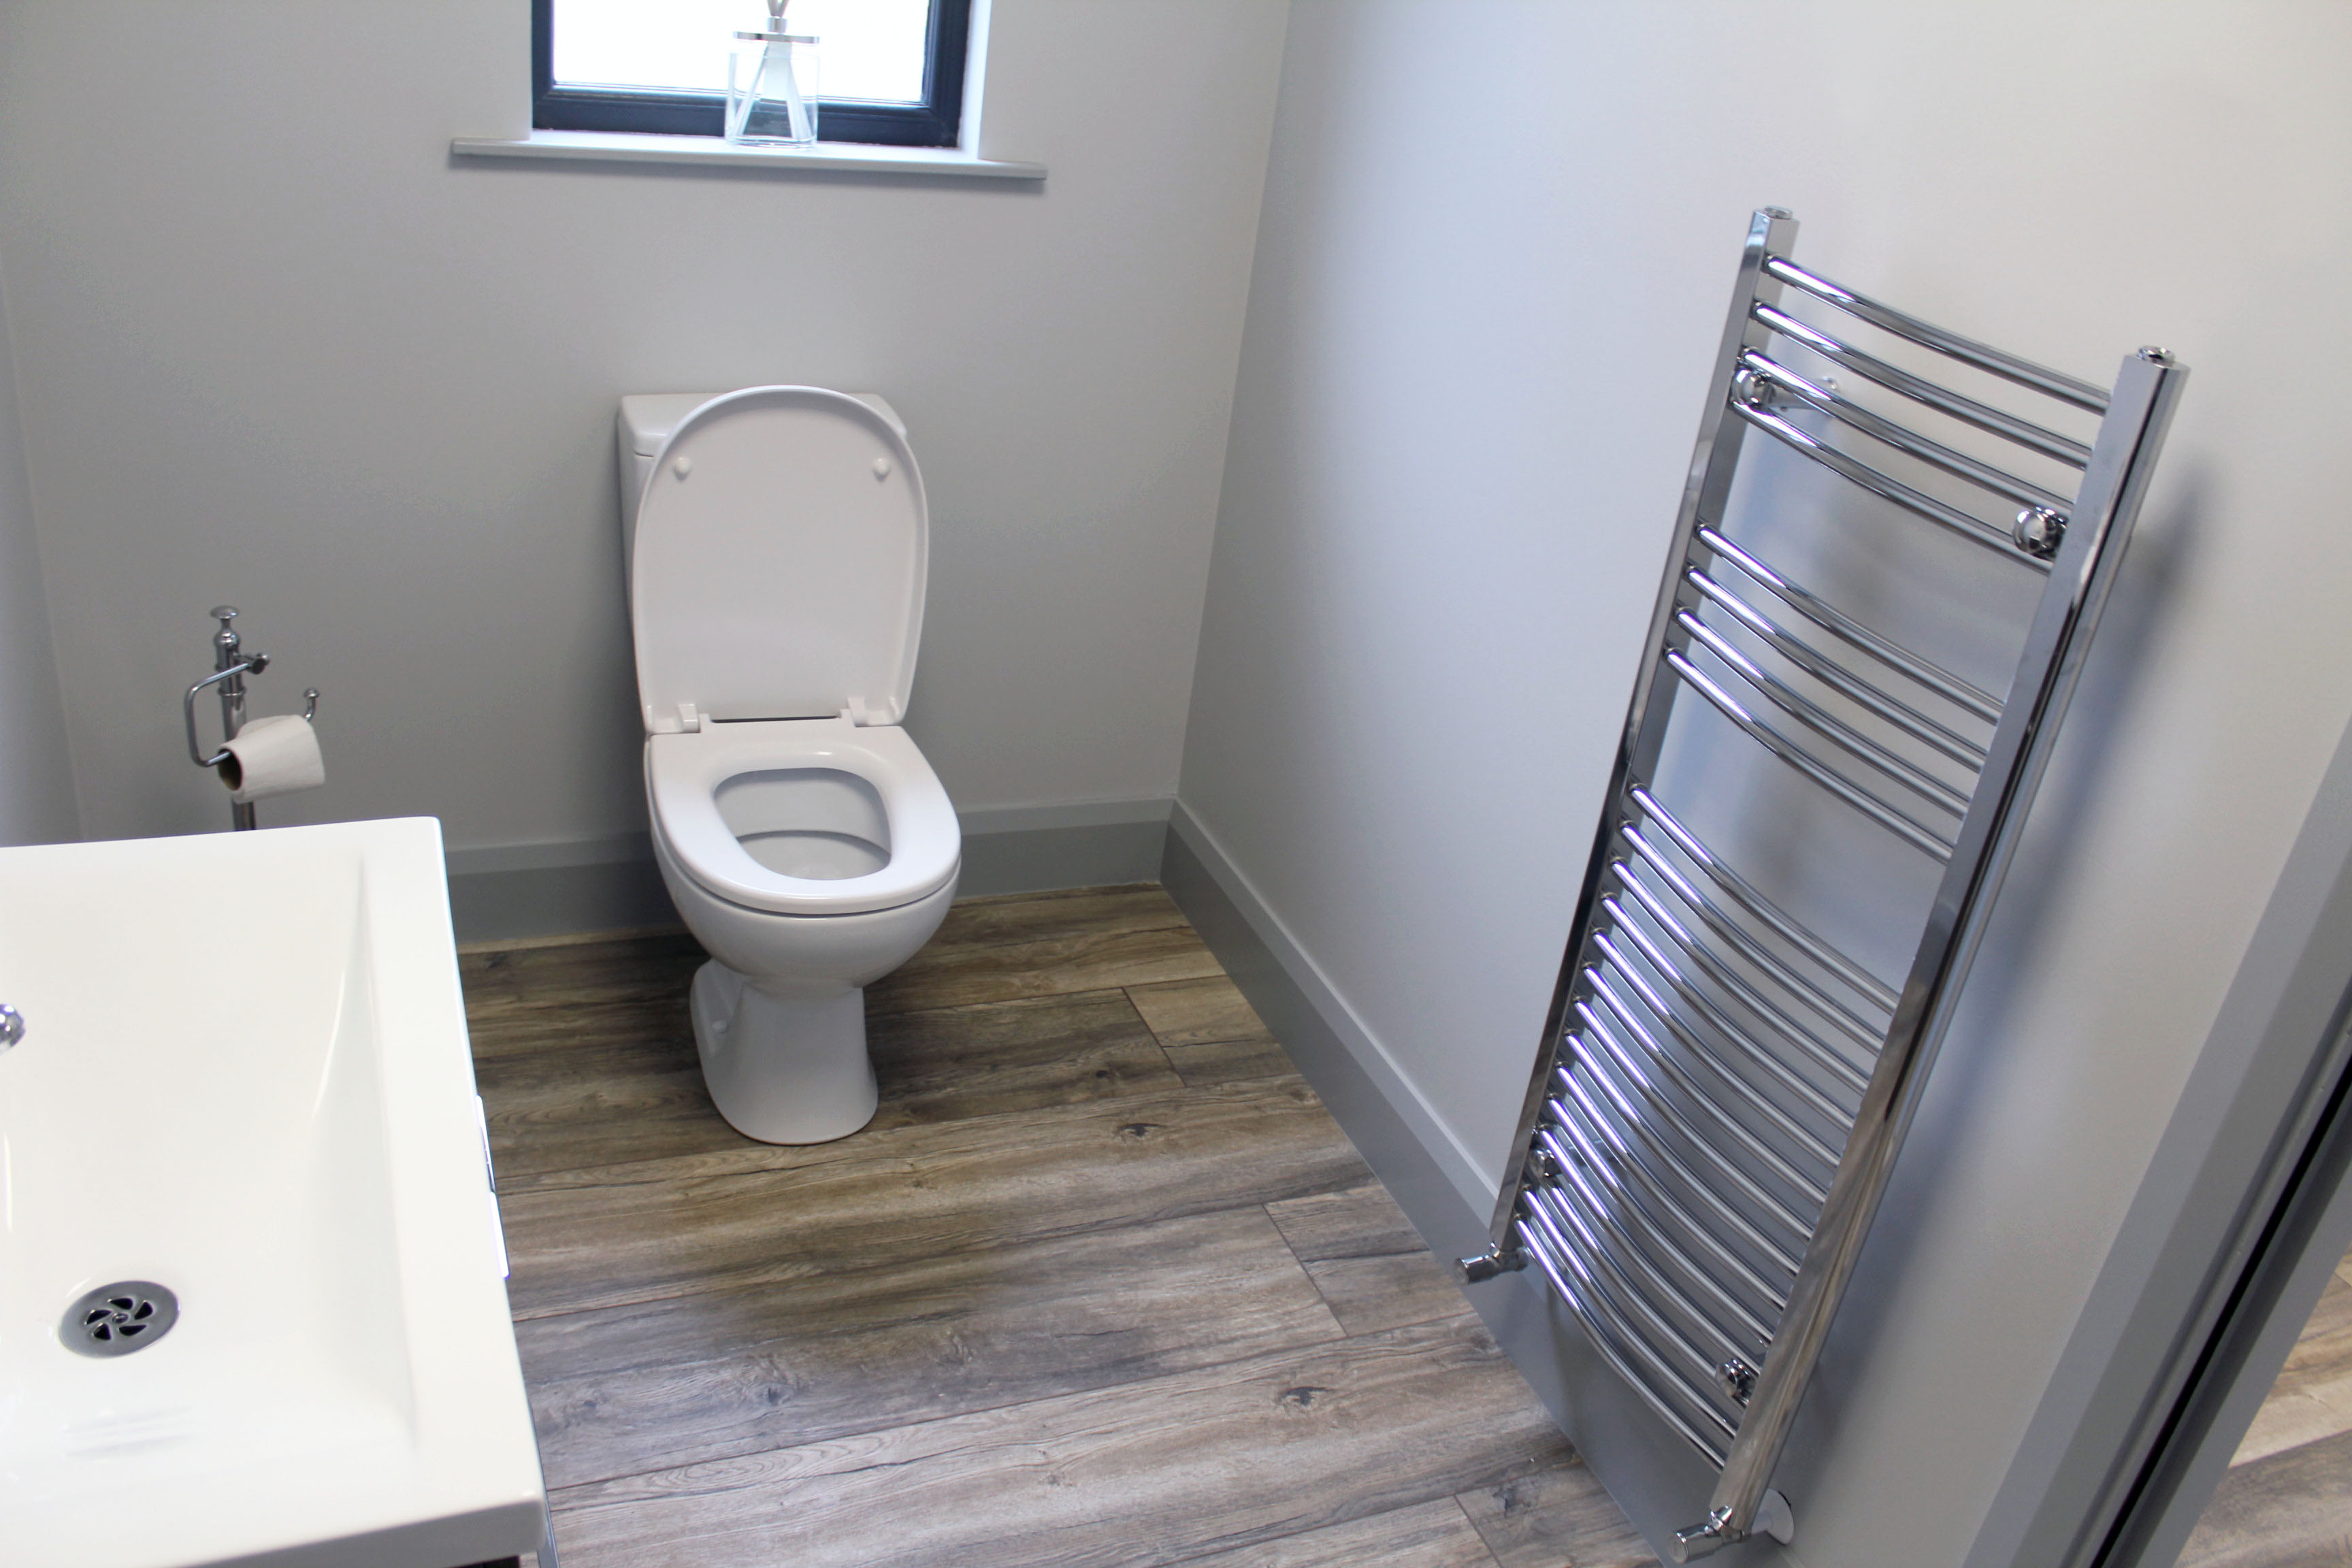 KES Group Offsite Construction Company Modular Office Toilet with Vanity Unit & Heated Towel Rail